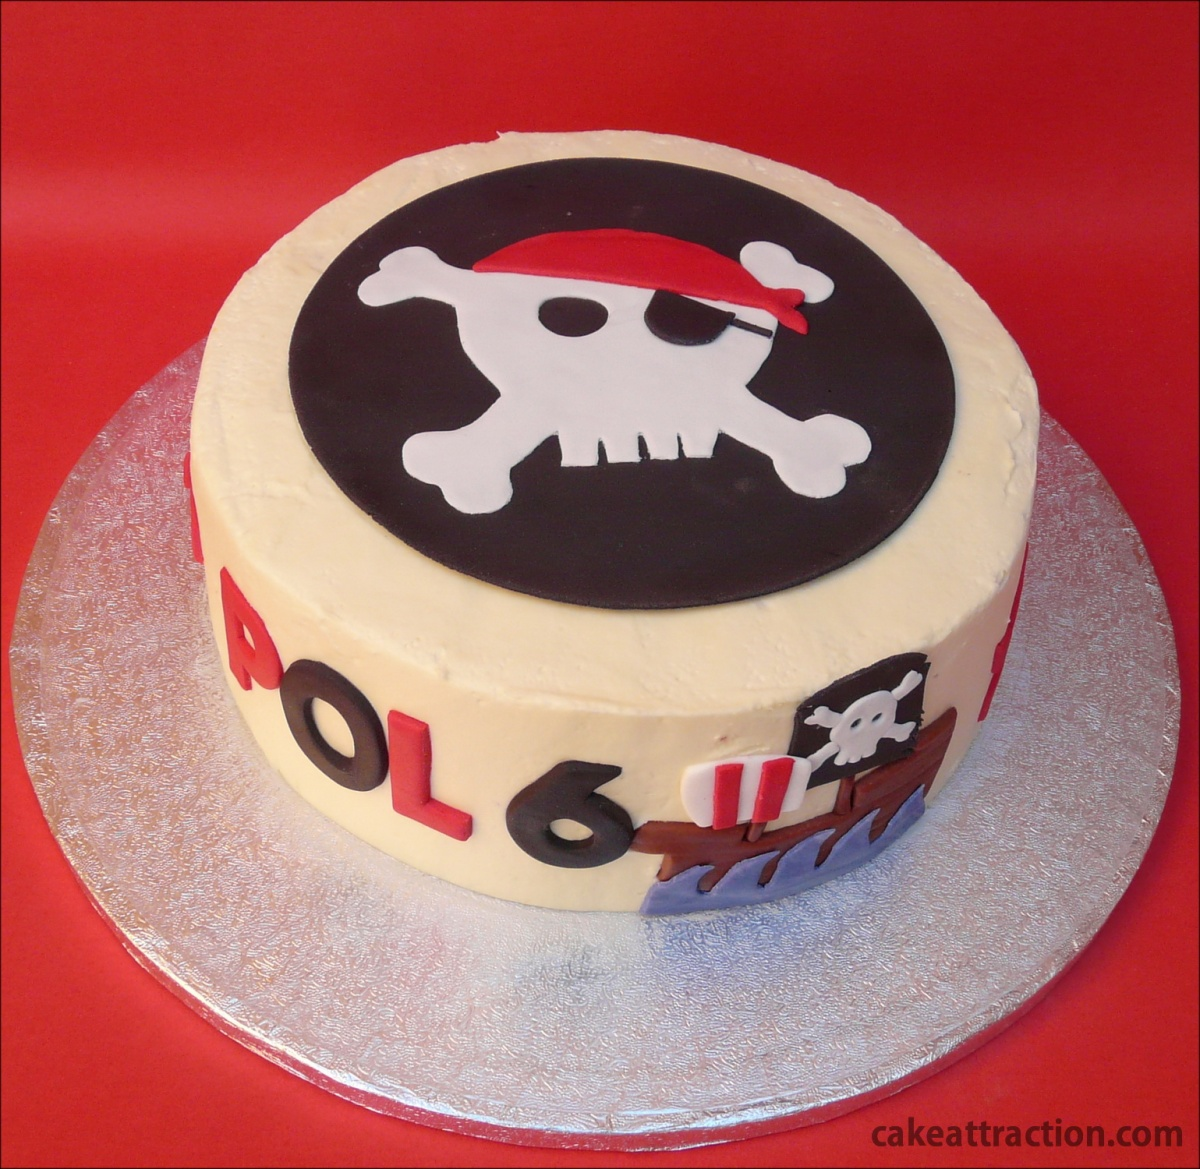 Tarta de Piratas (con Buttercream de Chocolate Blanco)